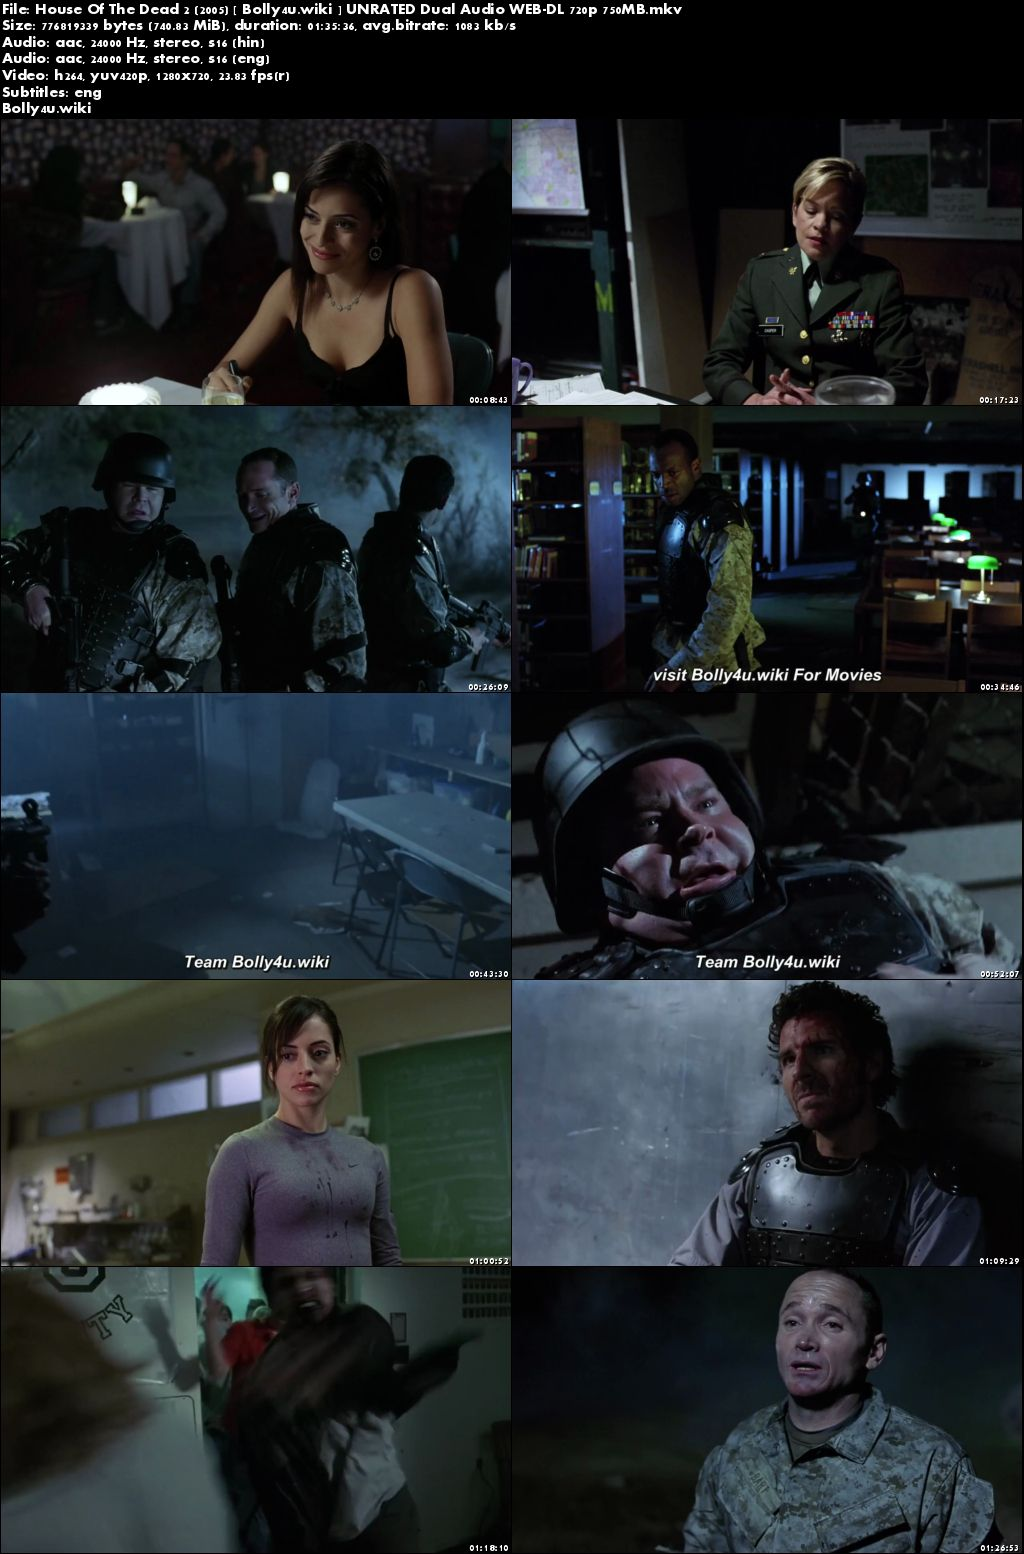 House Of The Dead 2 2005 WEB-DL 750MB UNRATED Hindi Dual Audio 720p Download